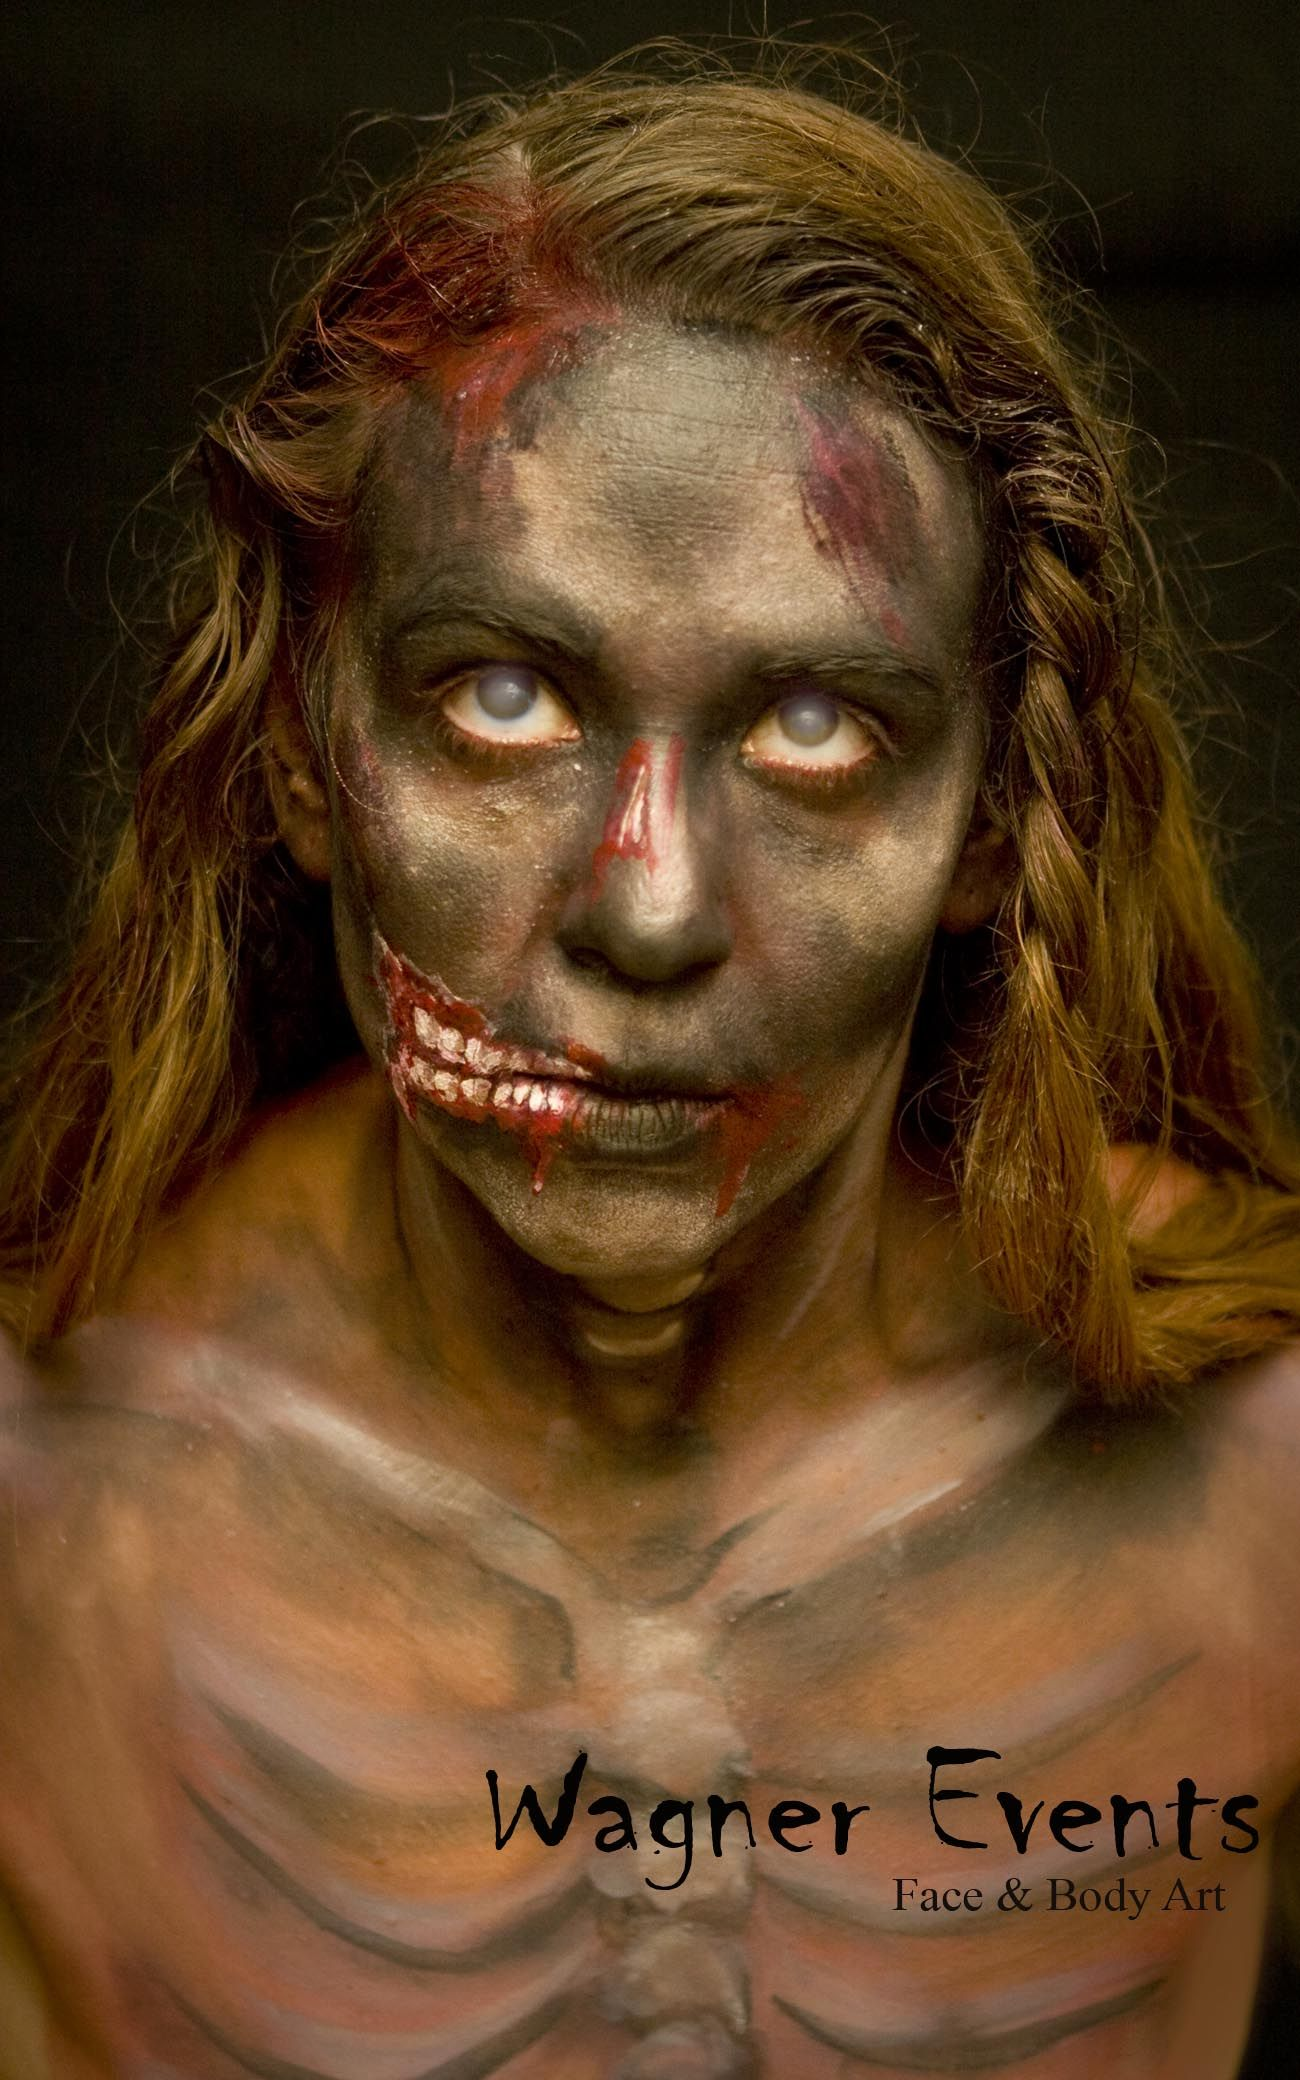 zombie face paint, for other entertaining events. Zombie